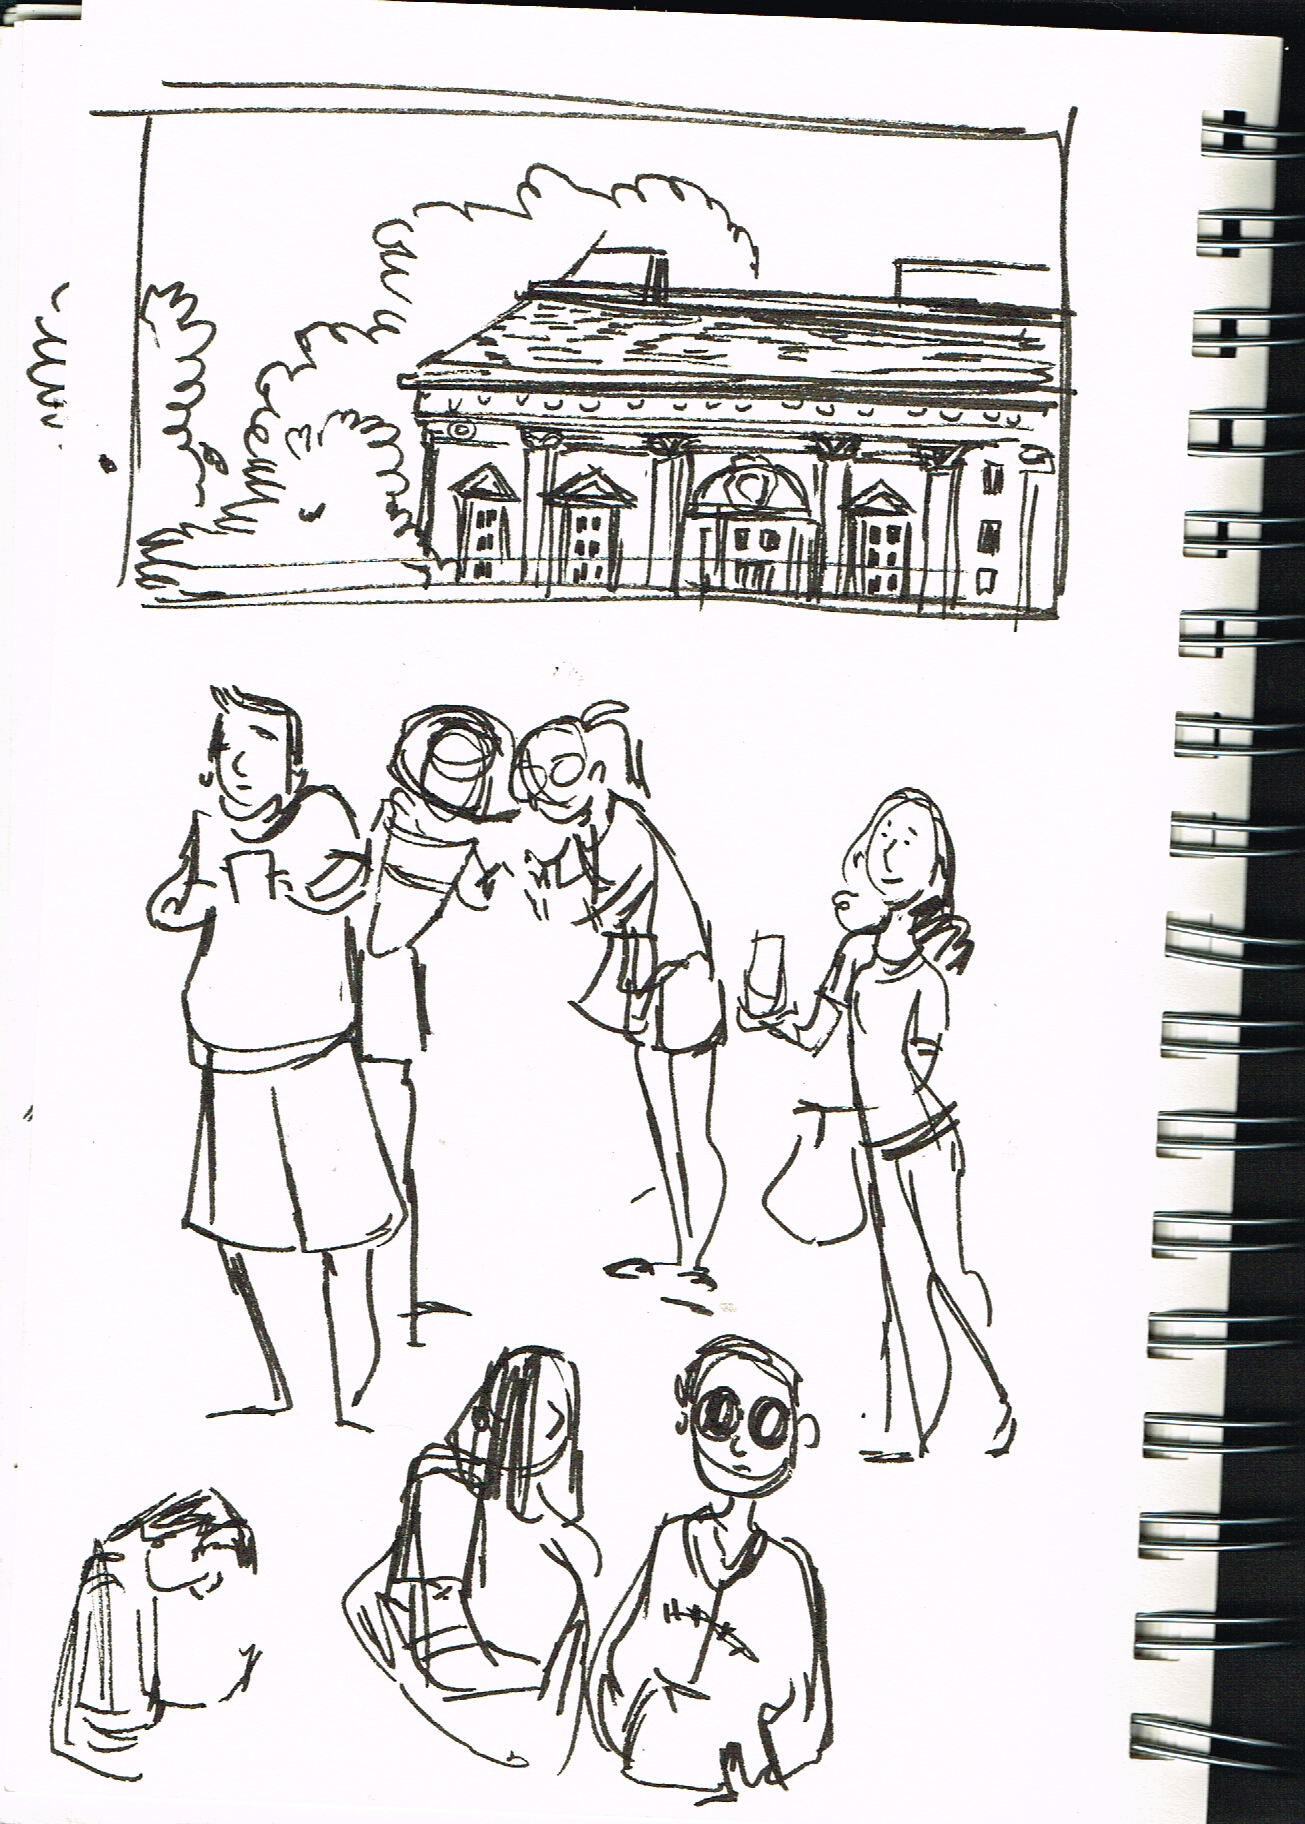 vacation_sketchbook_020.jpg